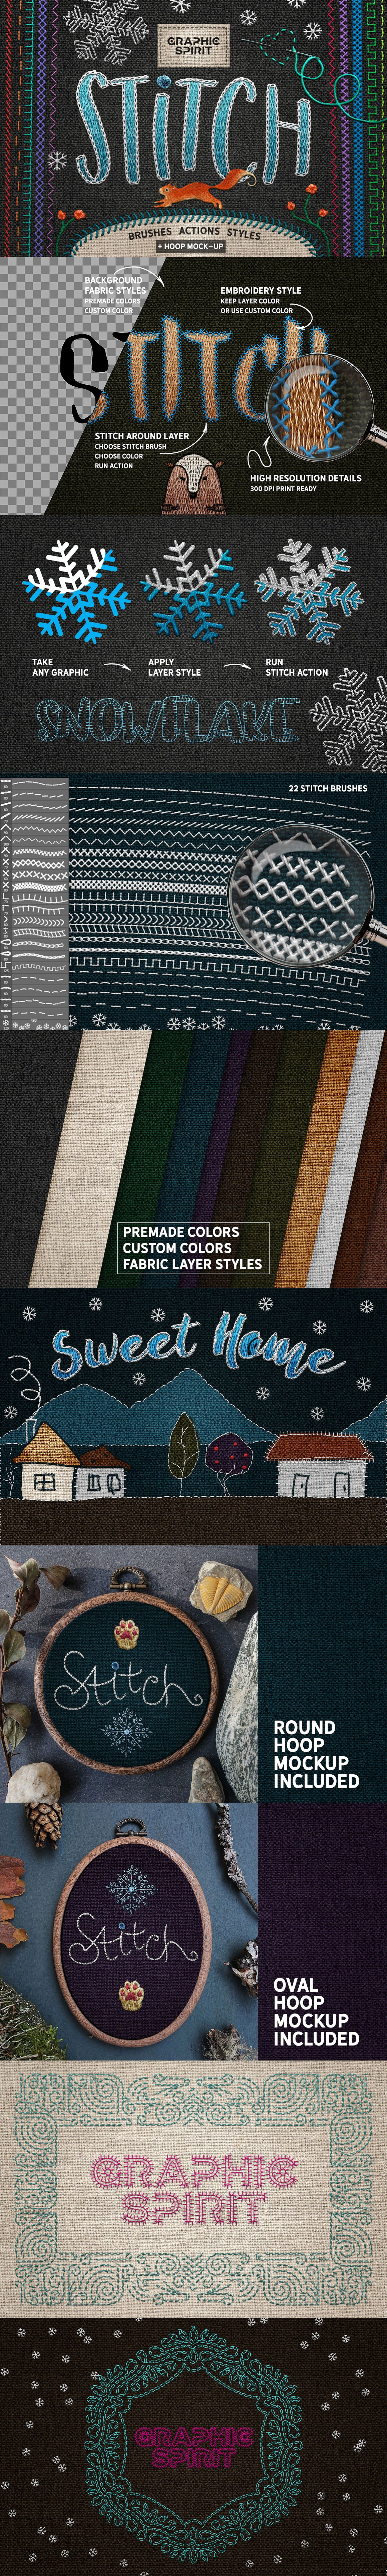 stitch-effect-photoshop-actions-brushes-styles0-.jpg